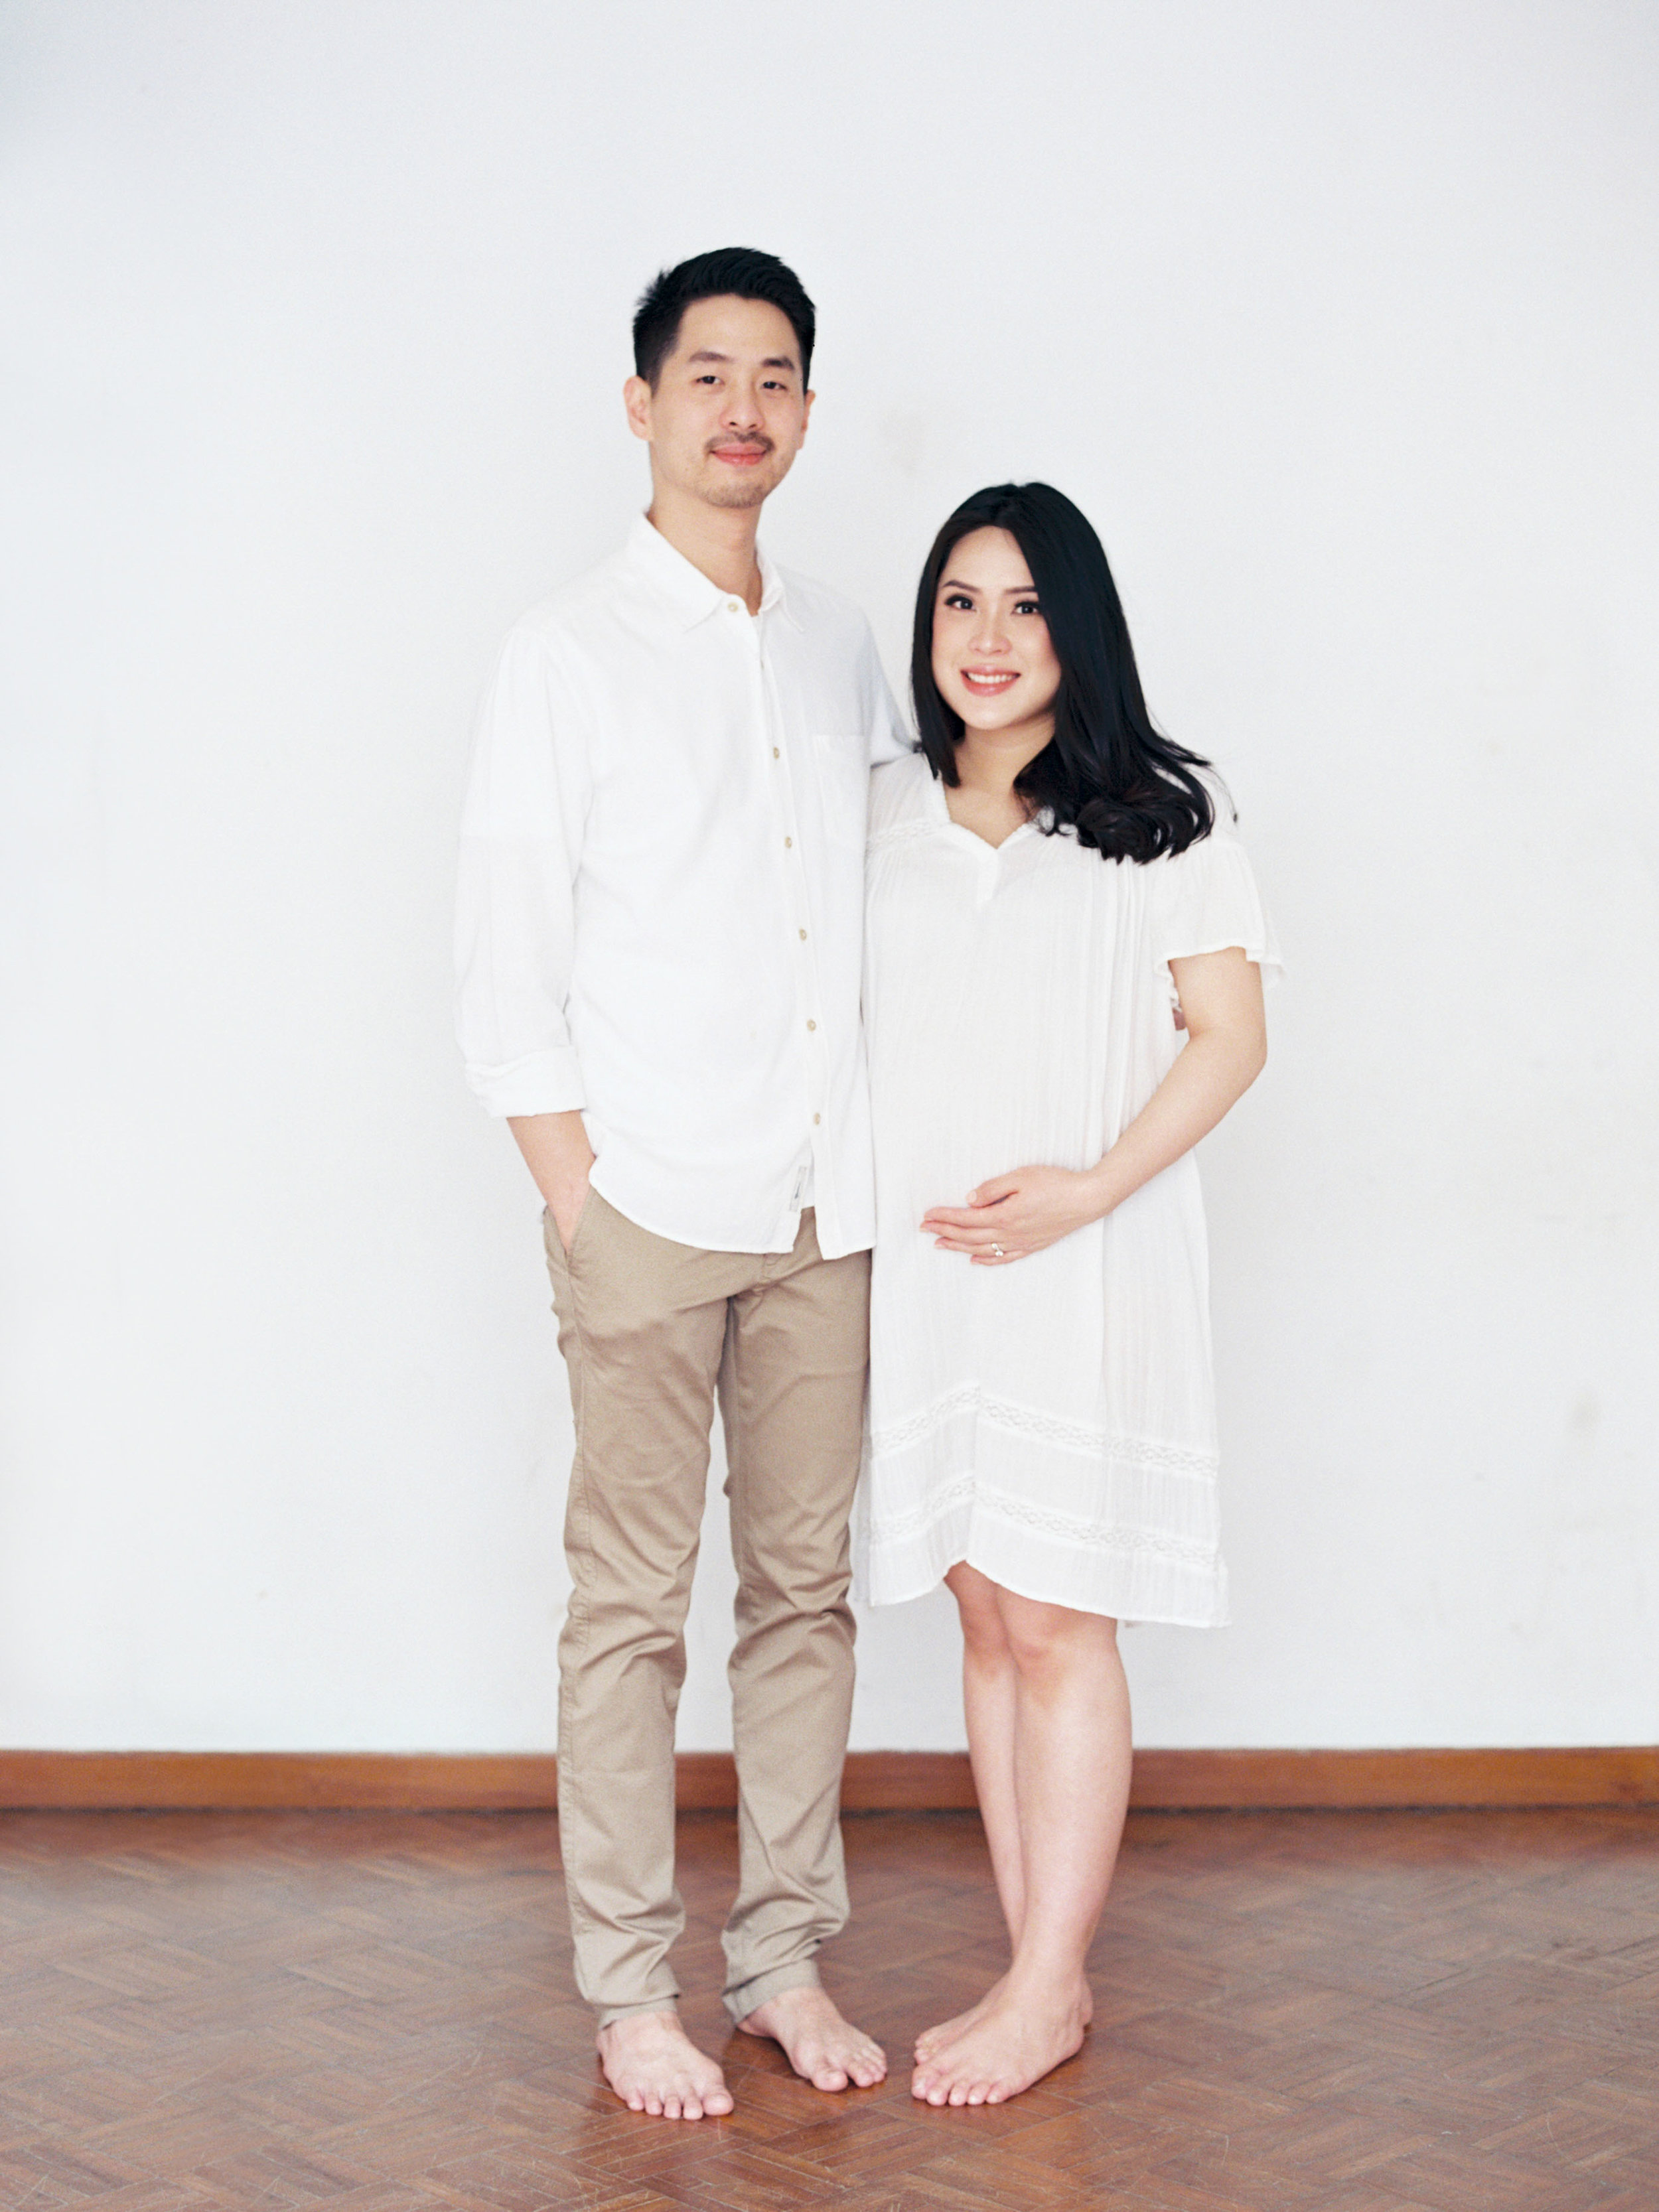 Gaby and Tim-Relaxed-Airy-Simple-Maternity Portrait Photoshoot-At Home-Jakarta-Studio June-Film Photography & Styling-28.jpg